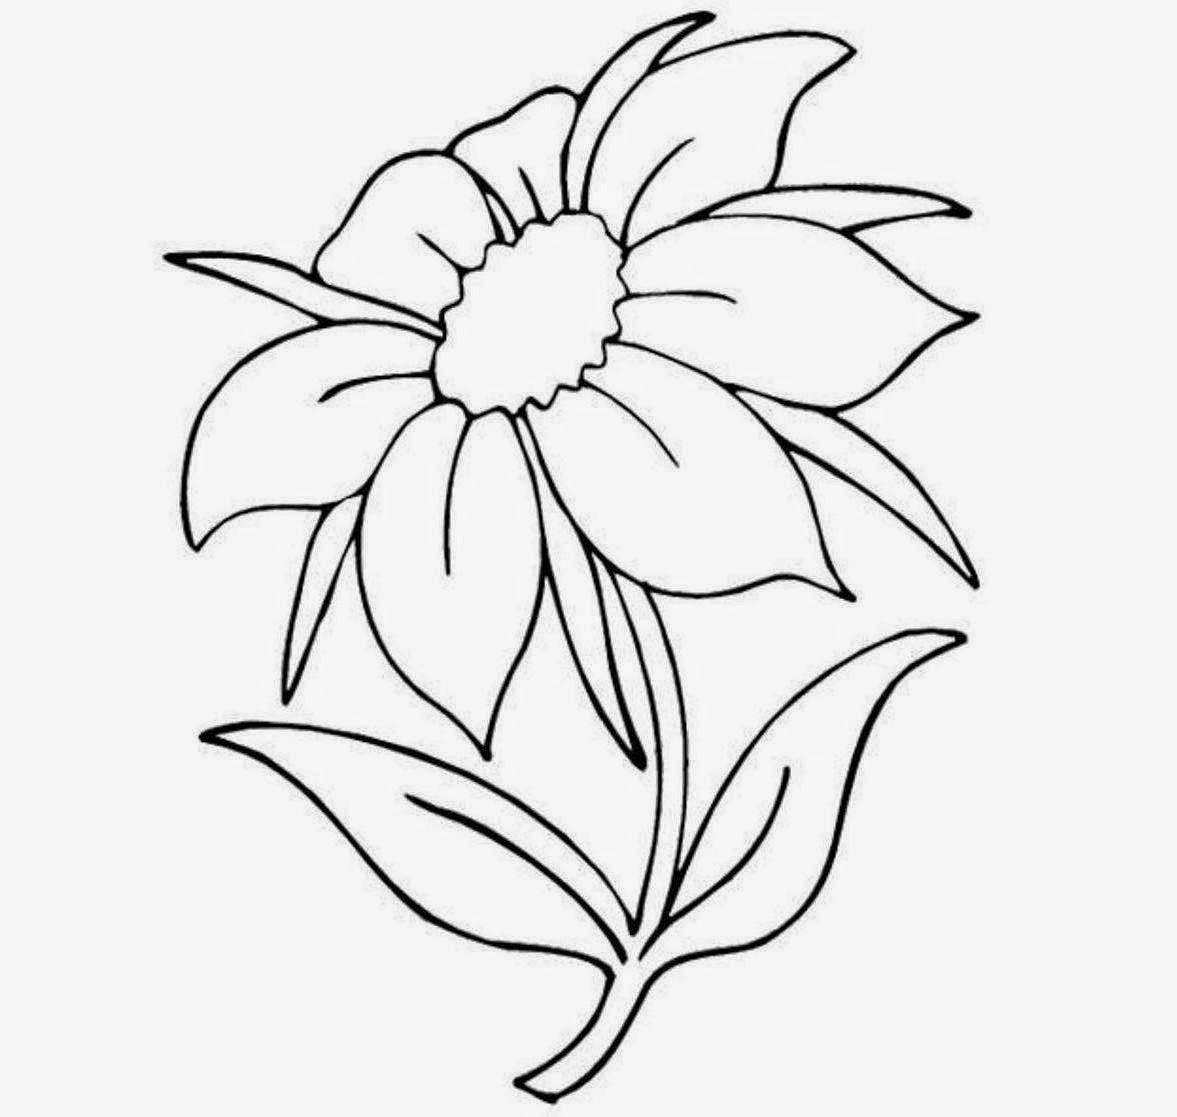 easy plants to draw flower drawings with color for kids tumblr in black and easy draw plants to